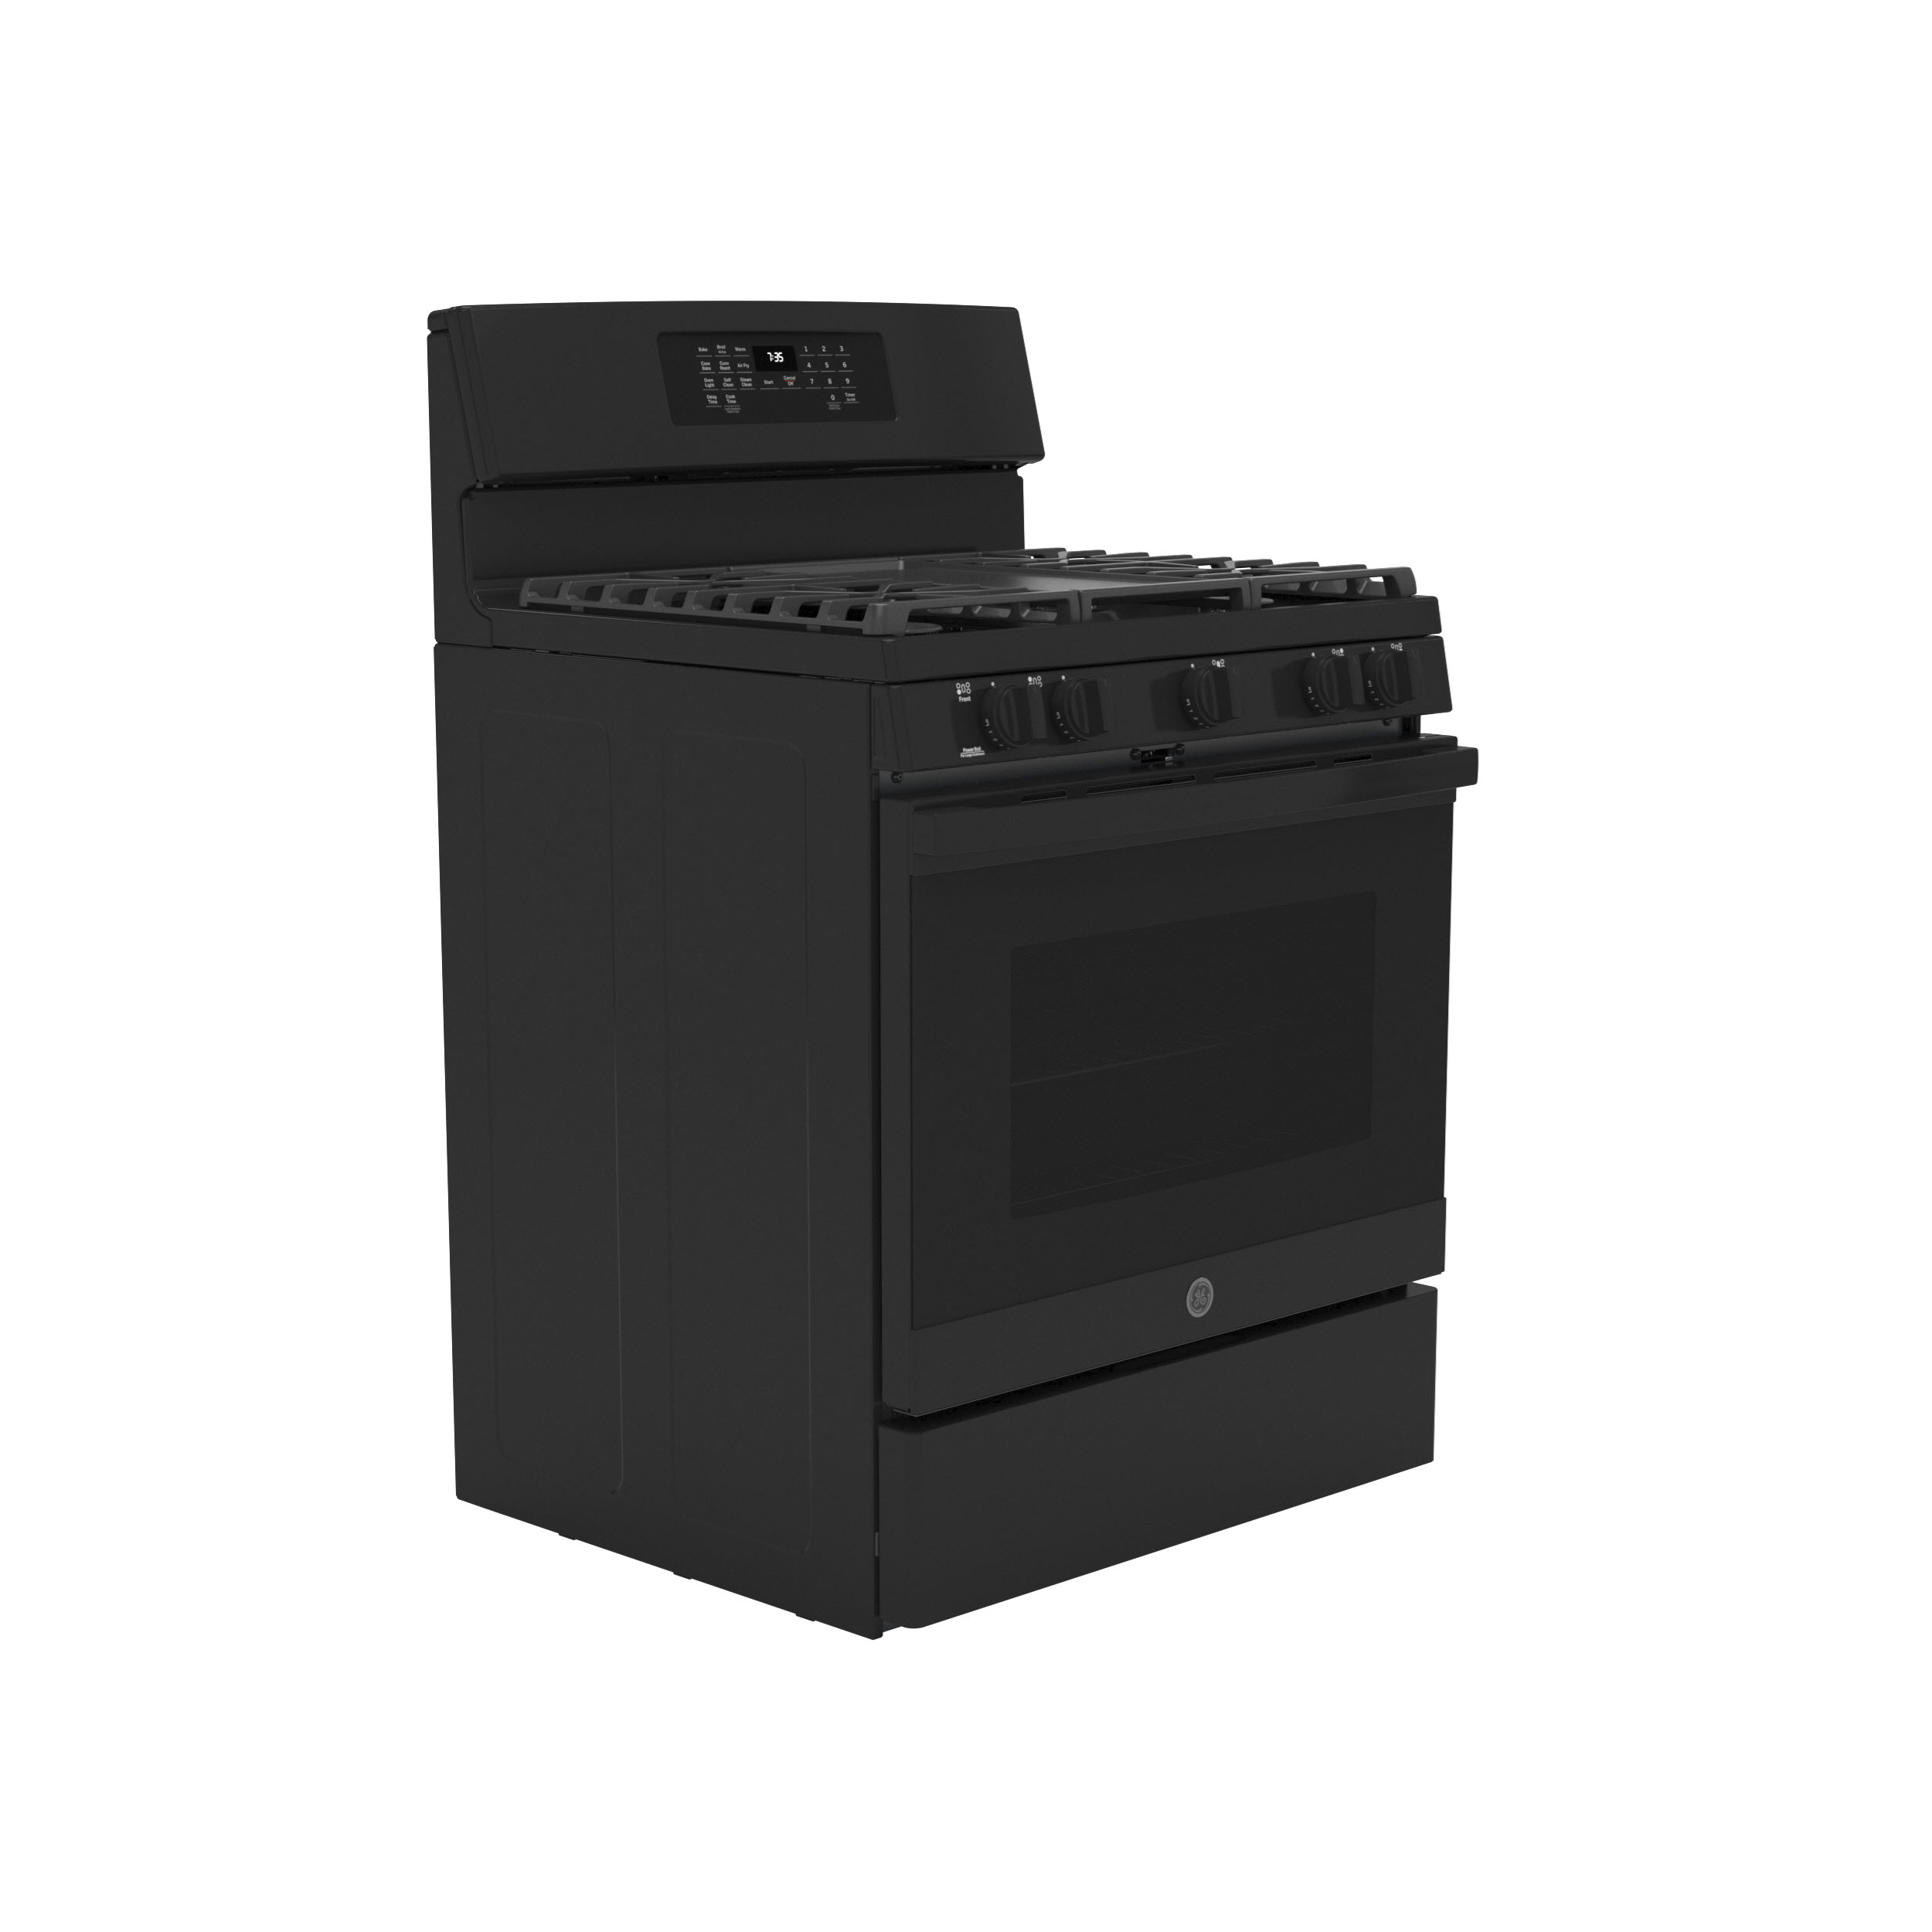 """Model: JGB735DPBB   GE GE® 30"""" Free-Standing Gas Convection Range with No Preheat Air Fry"""